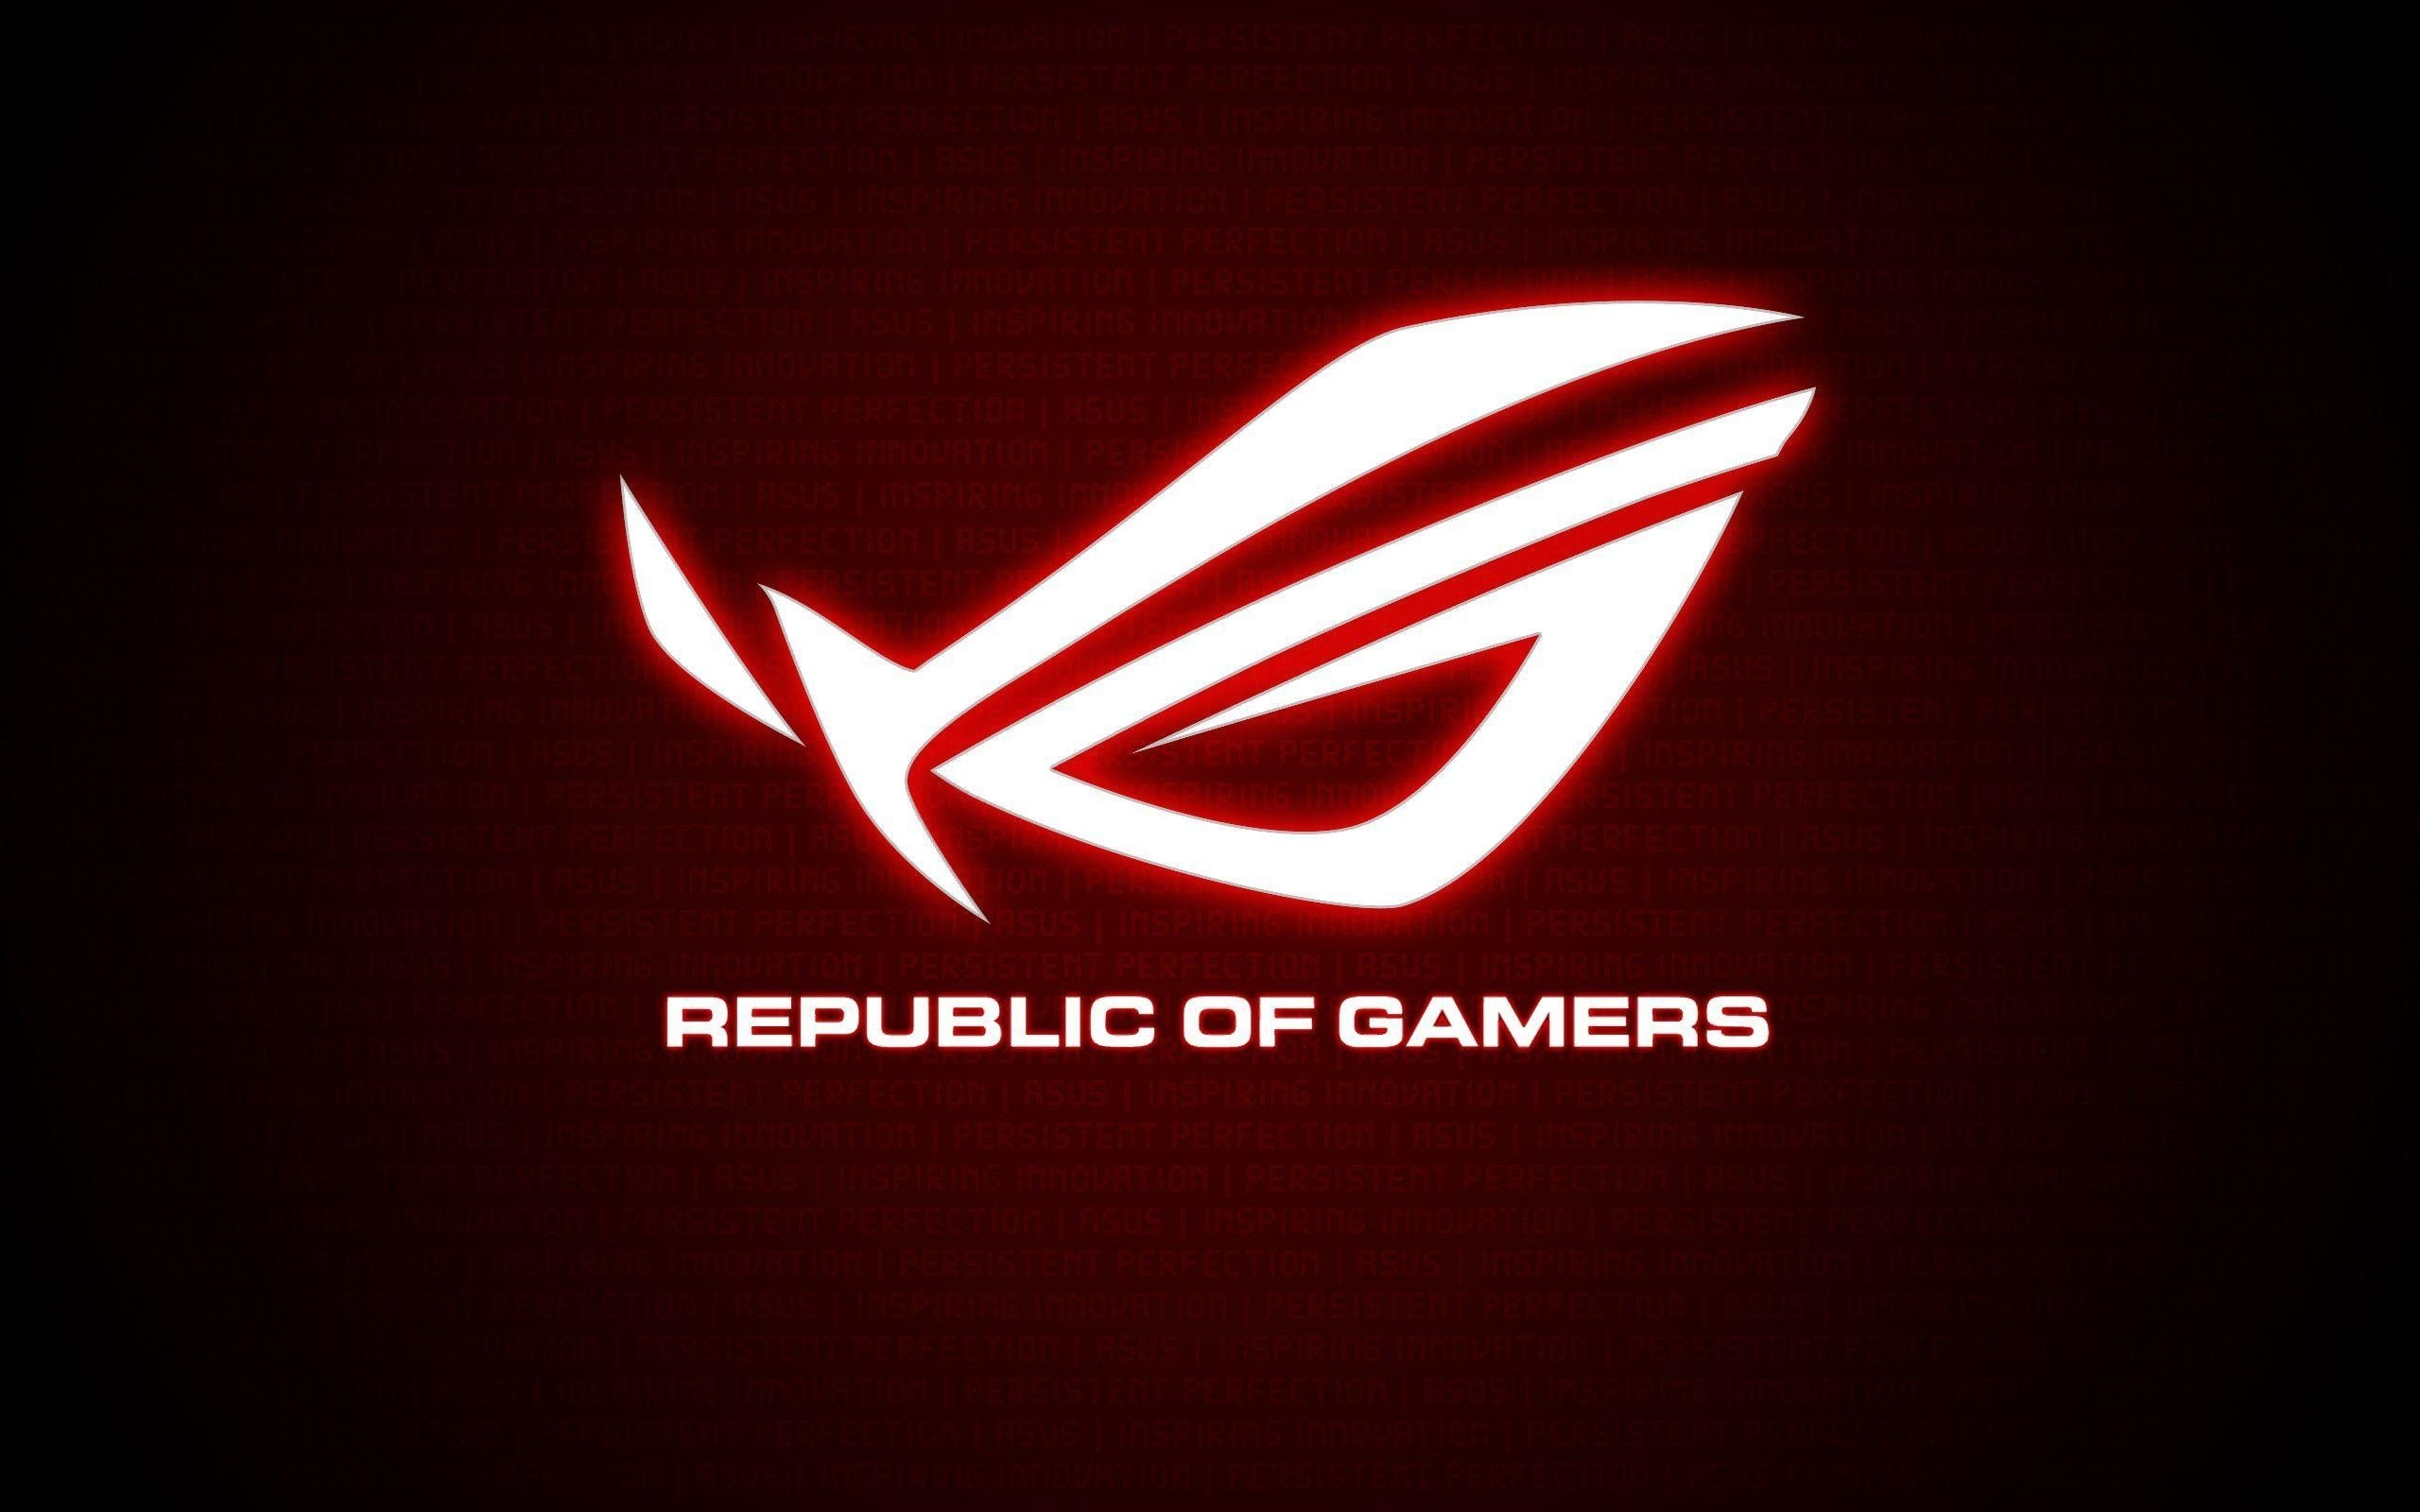 republic of gamers wallpapers - wallpaper cave